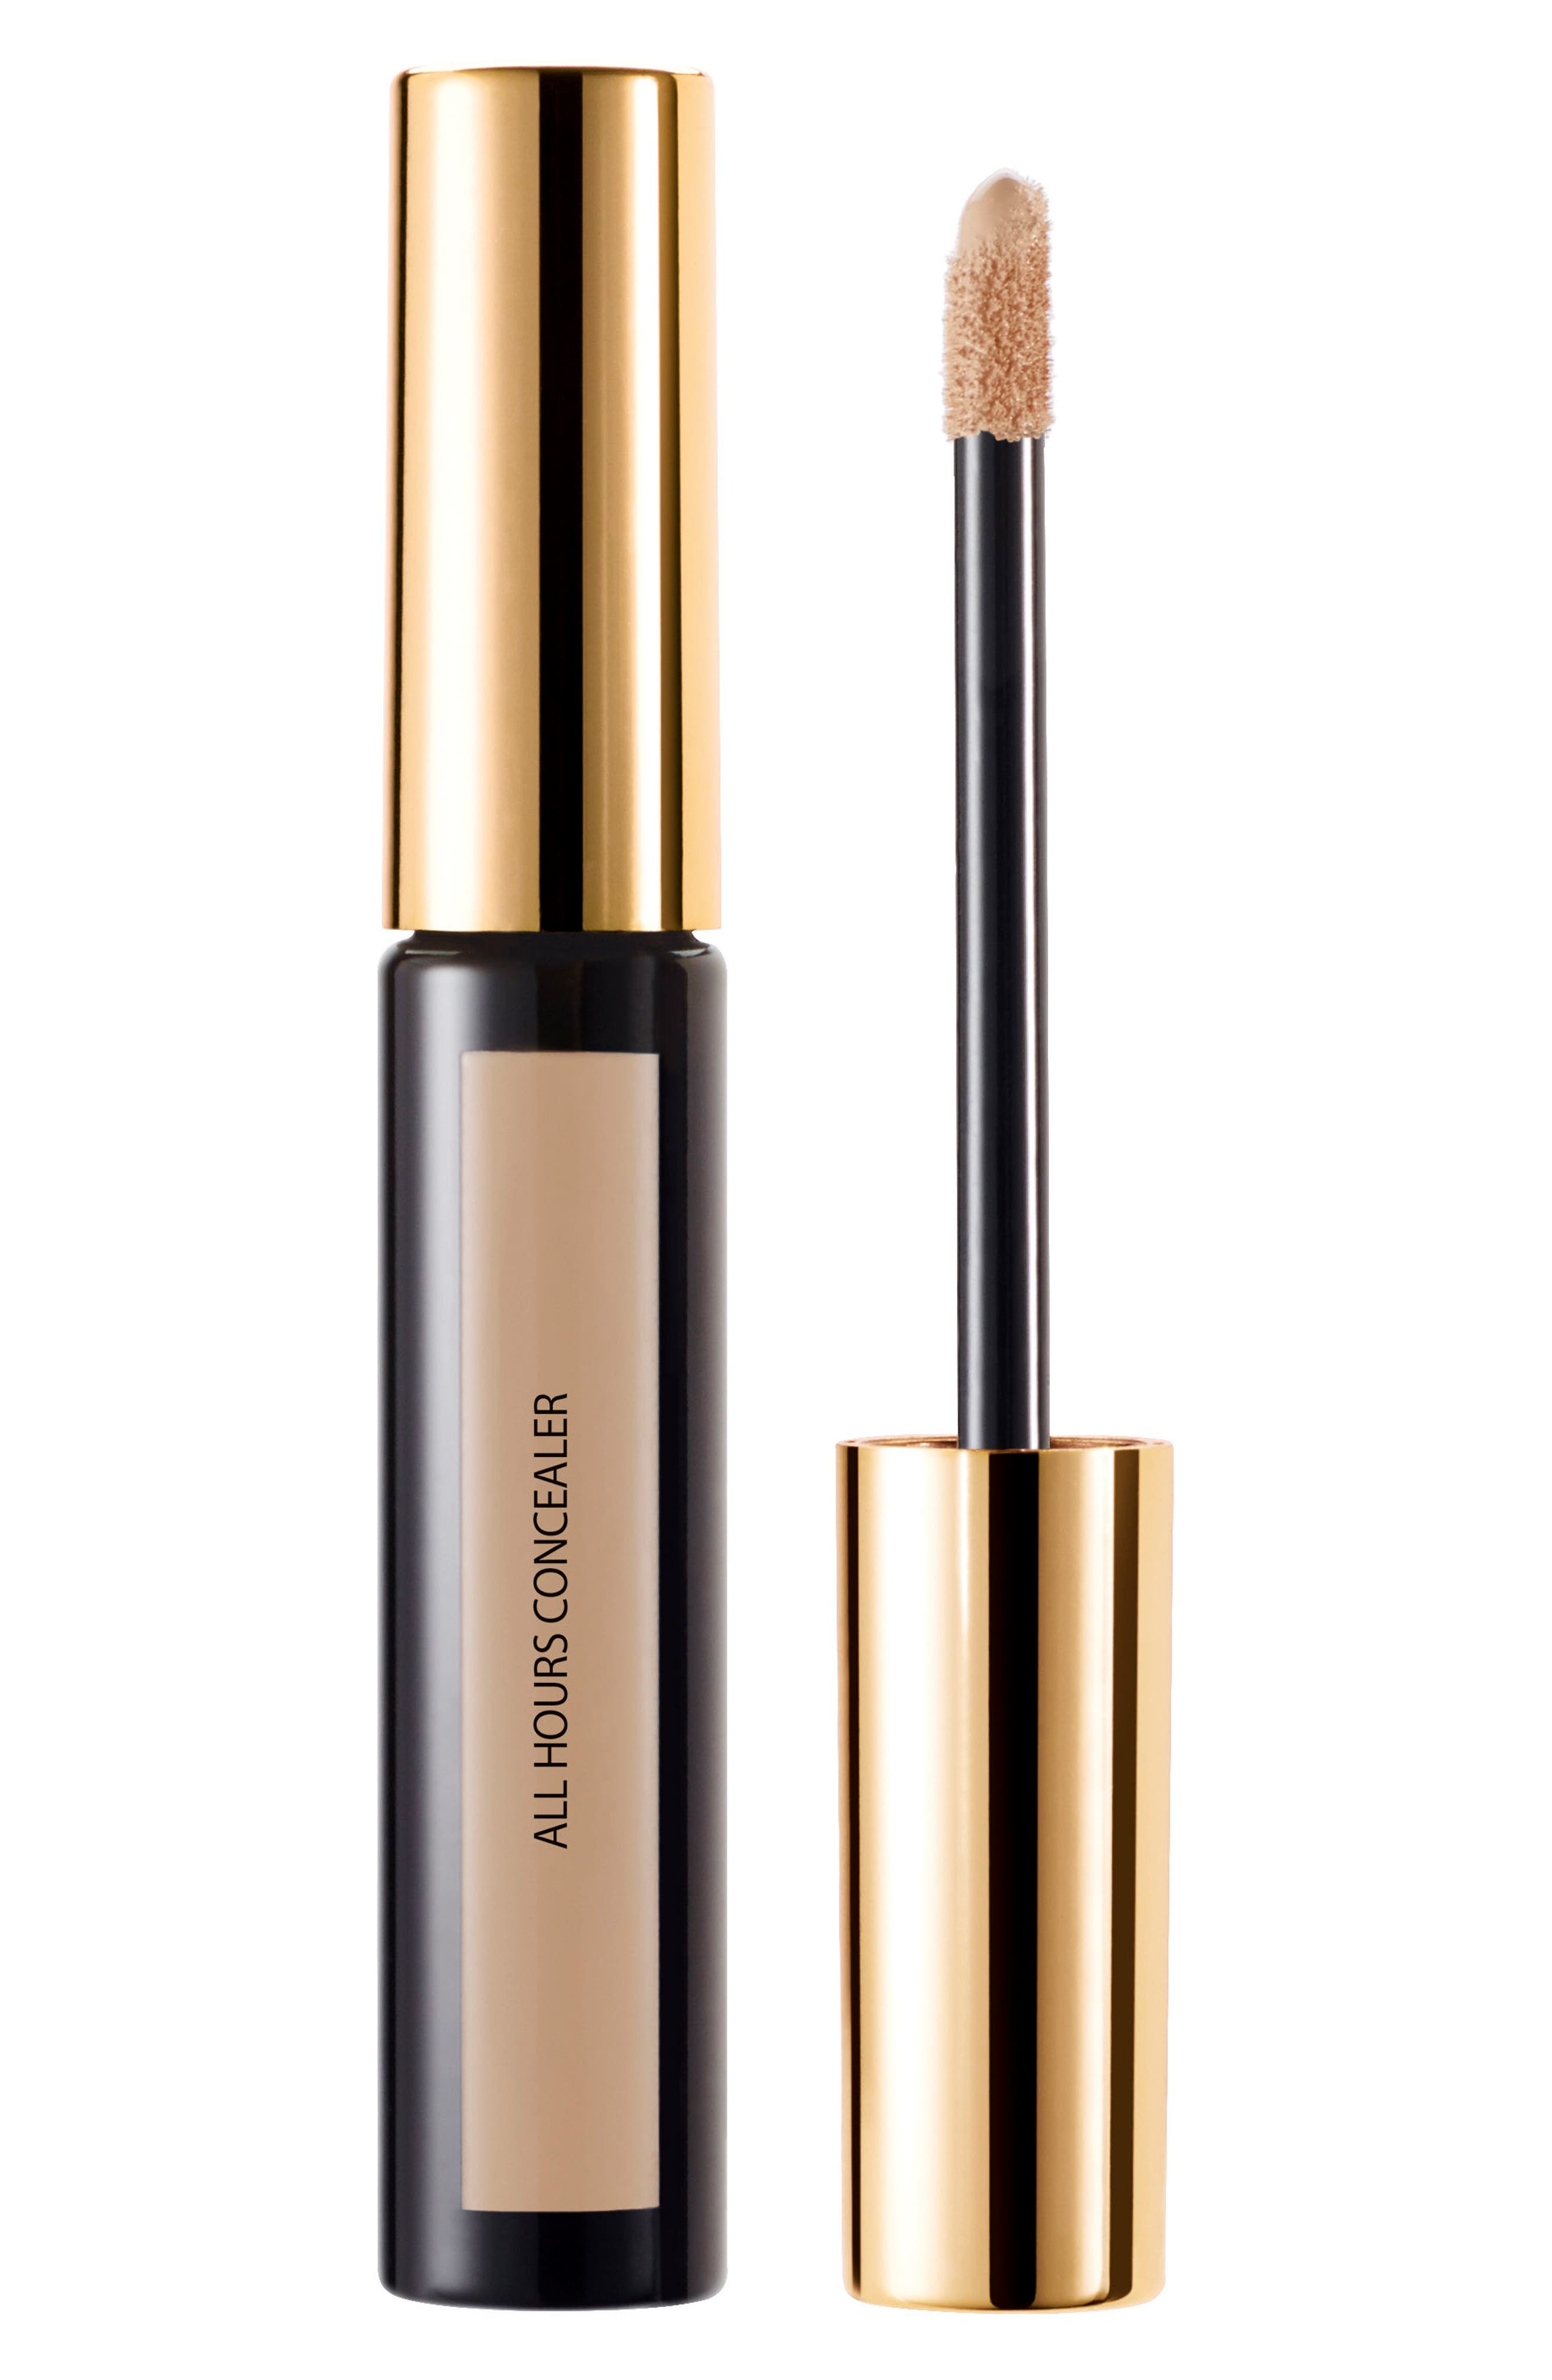 Yves Saint Laurent All Hours Concealer - 3 Almond